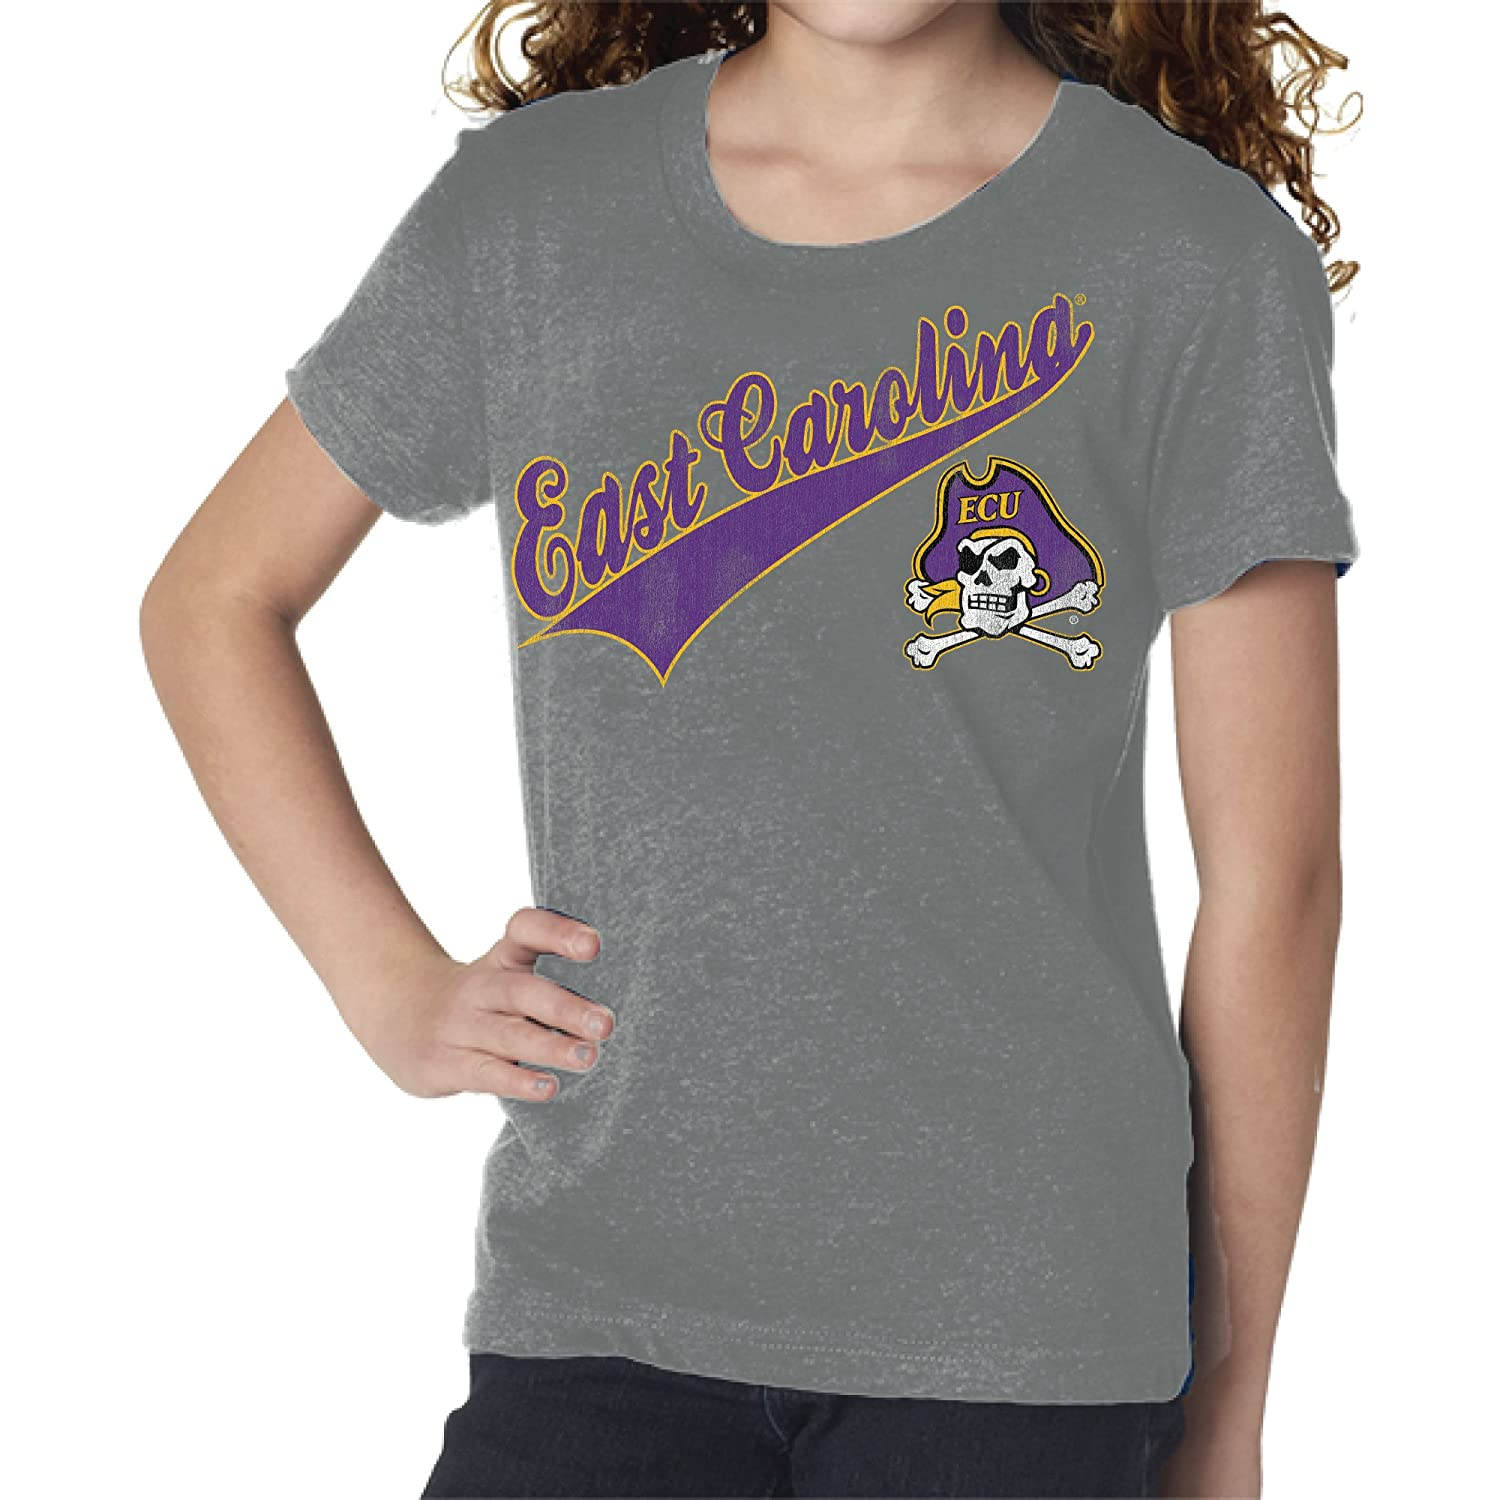 日本未入荷 NCAA East Carolina Tee Pirates Girls Youth Girls Tee, Tee Steel Grey NCAA East Carolina Pirates Youth Girls Tee, Steel Grey, Medium B01NAUFII2, 171オンラインショップ:3bb4757f --- a0267596.xsph.ru